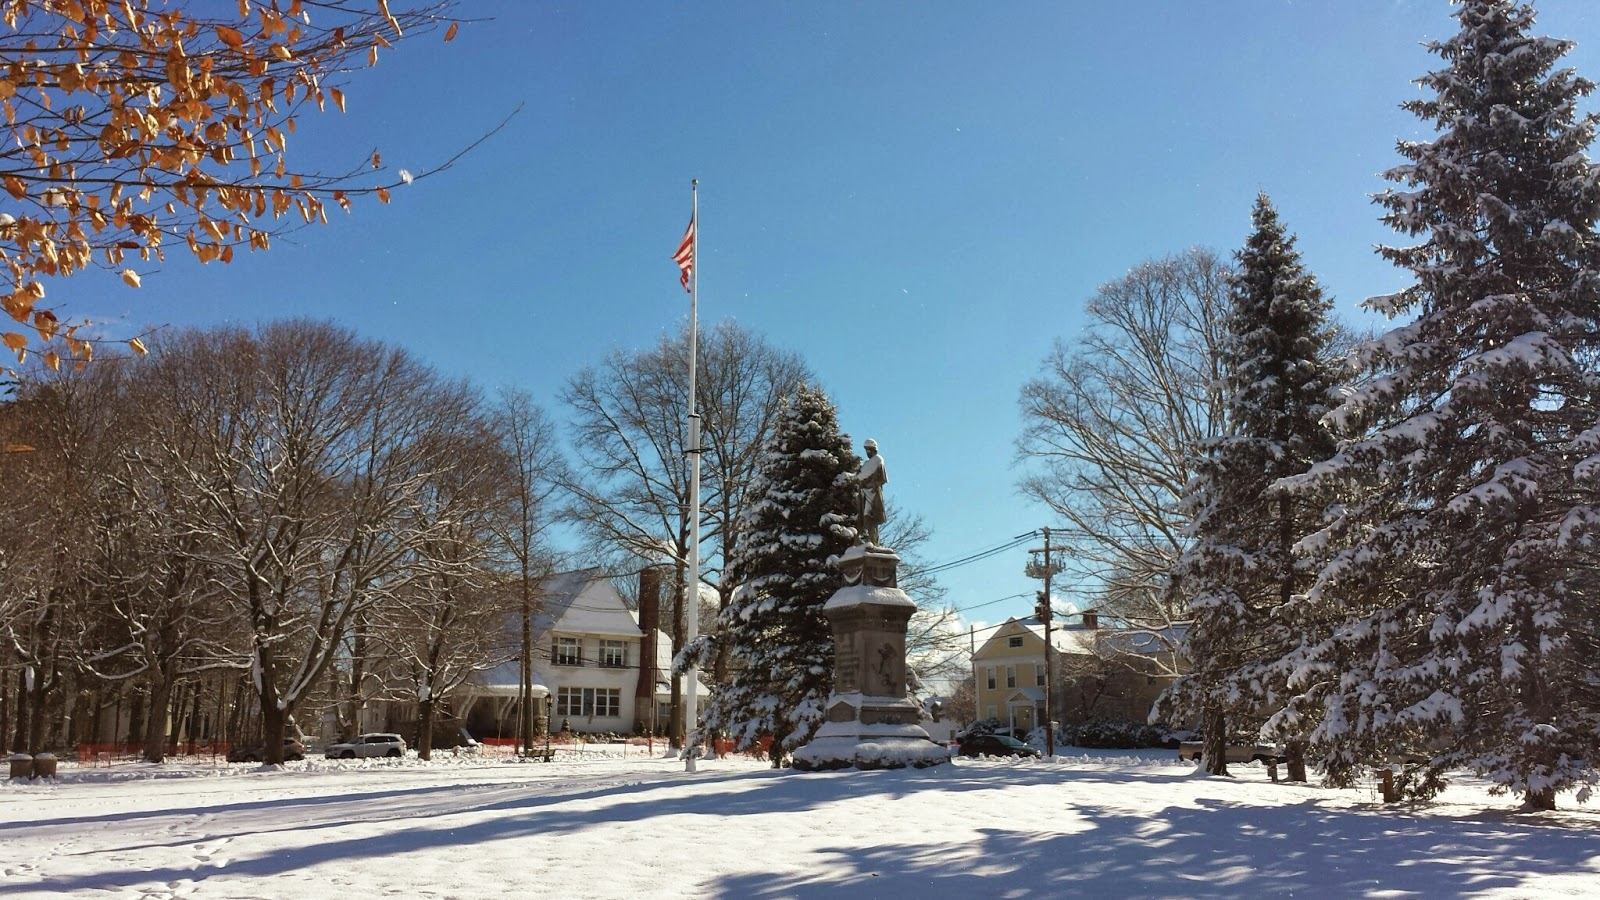 on the High St side of the Town Common, the spruce trees and Civil War memorial cast long shadows